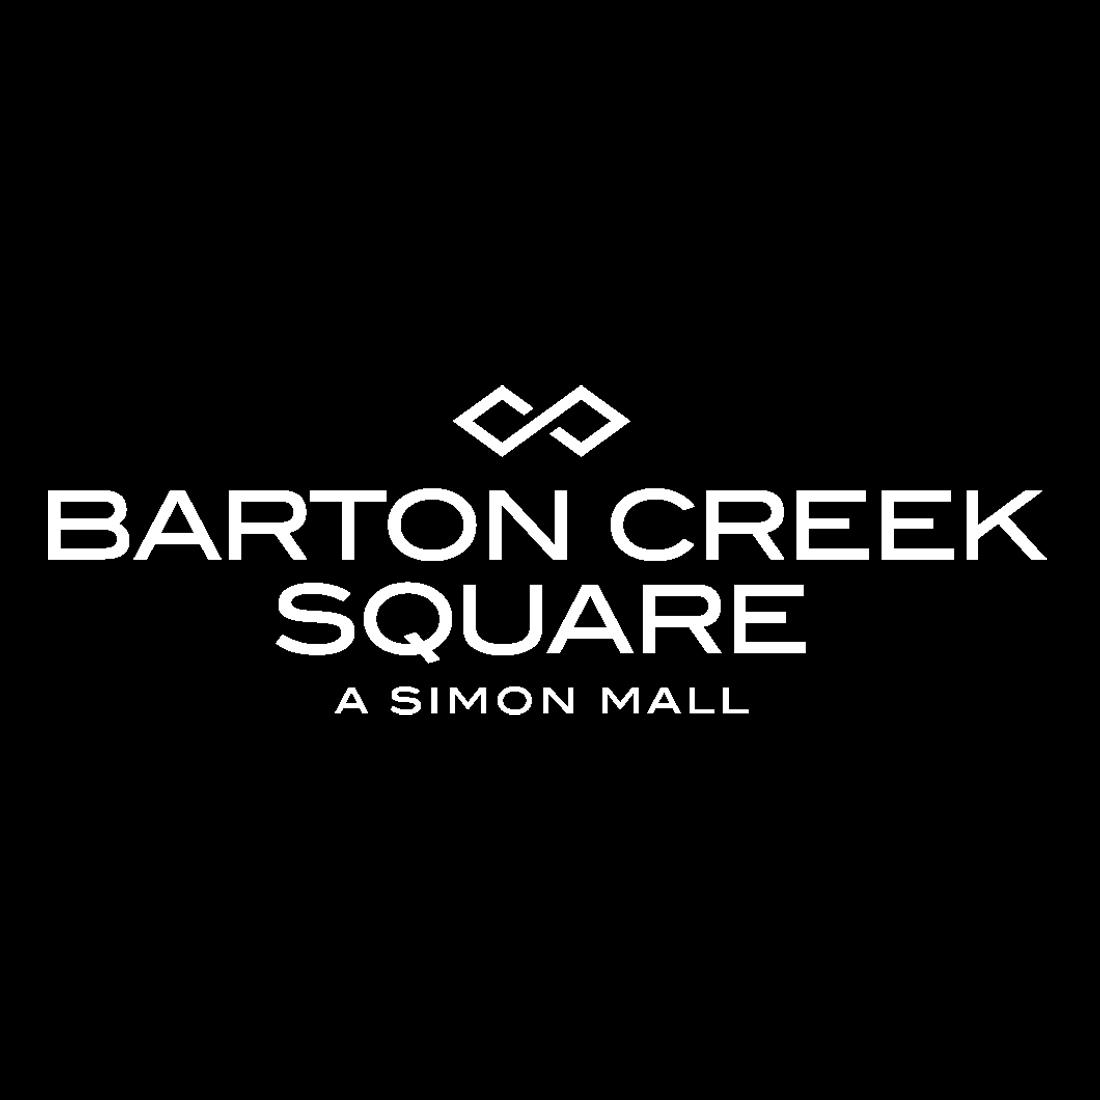 Barton Creek Square